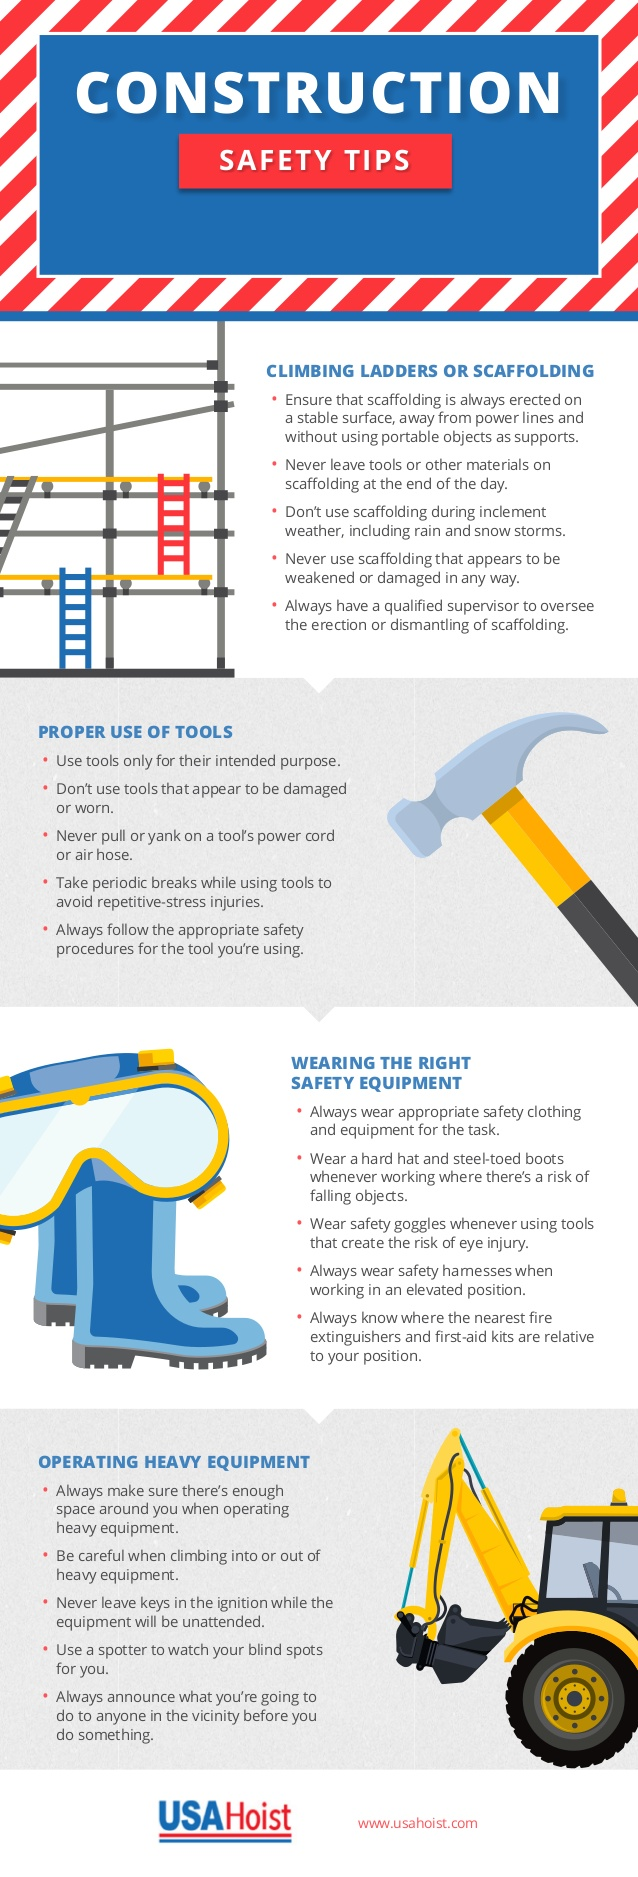 construction-safety-tips